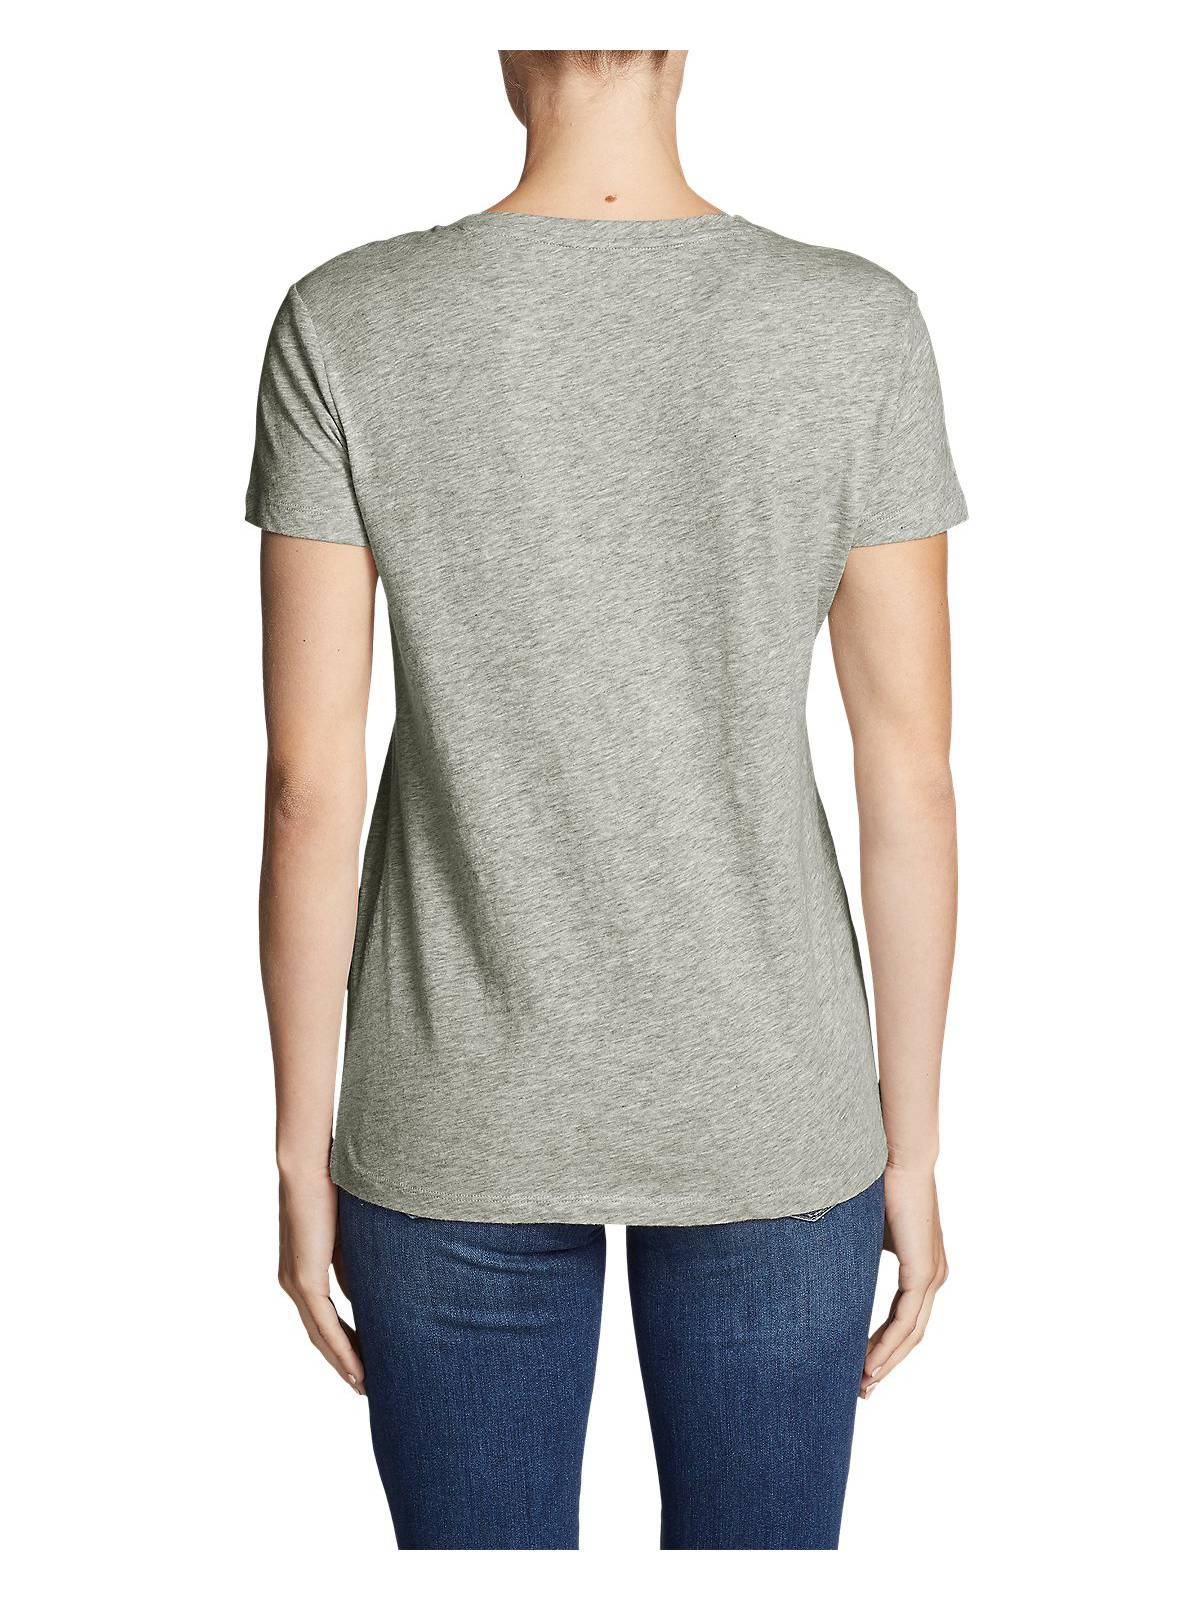 Eddie-Bauer-Women-039-s-Legend-Wash-Slub-Short-Sleeve-V-Neck-T-Shirt thumbnail 15